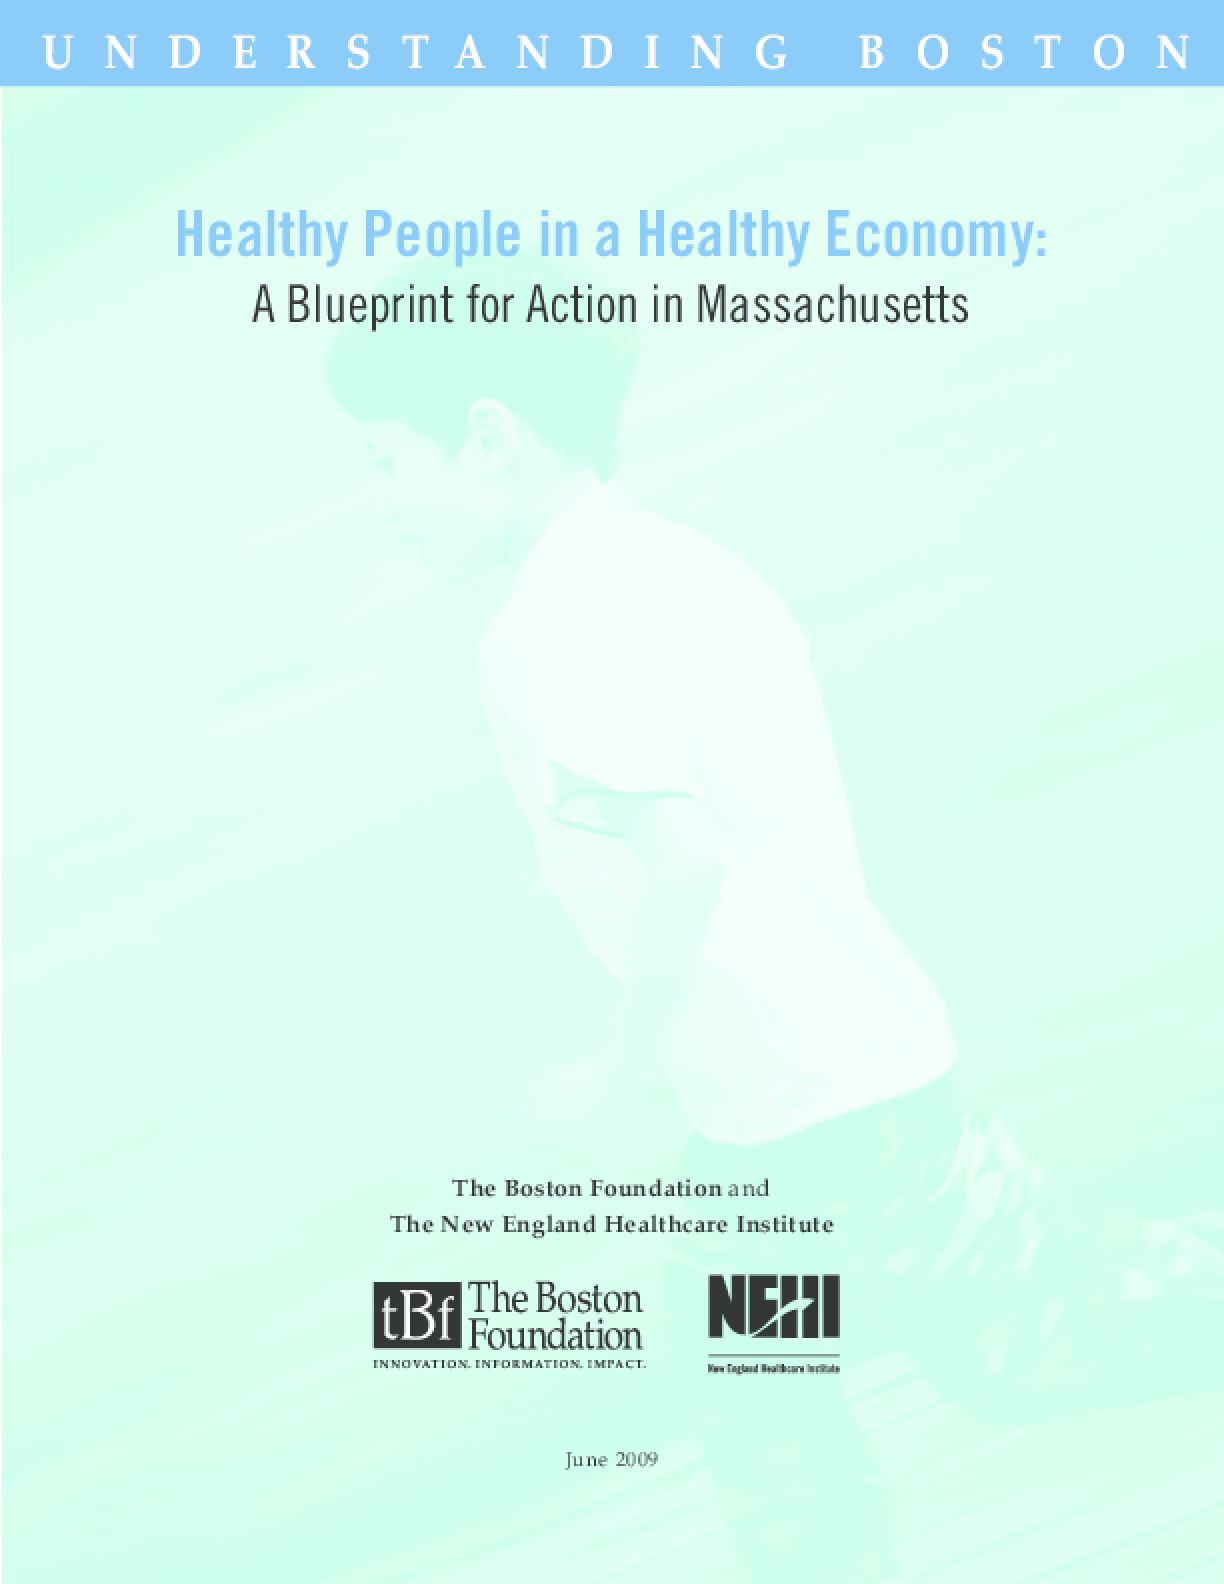 Healthy People in a Healthy Economy: A Blueprint for Action in Massachusetts